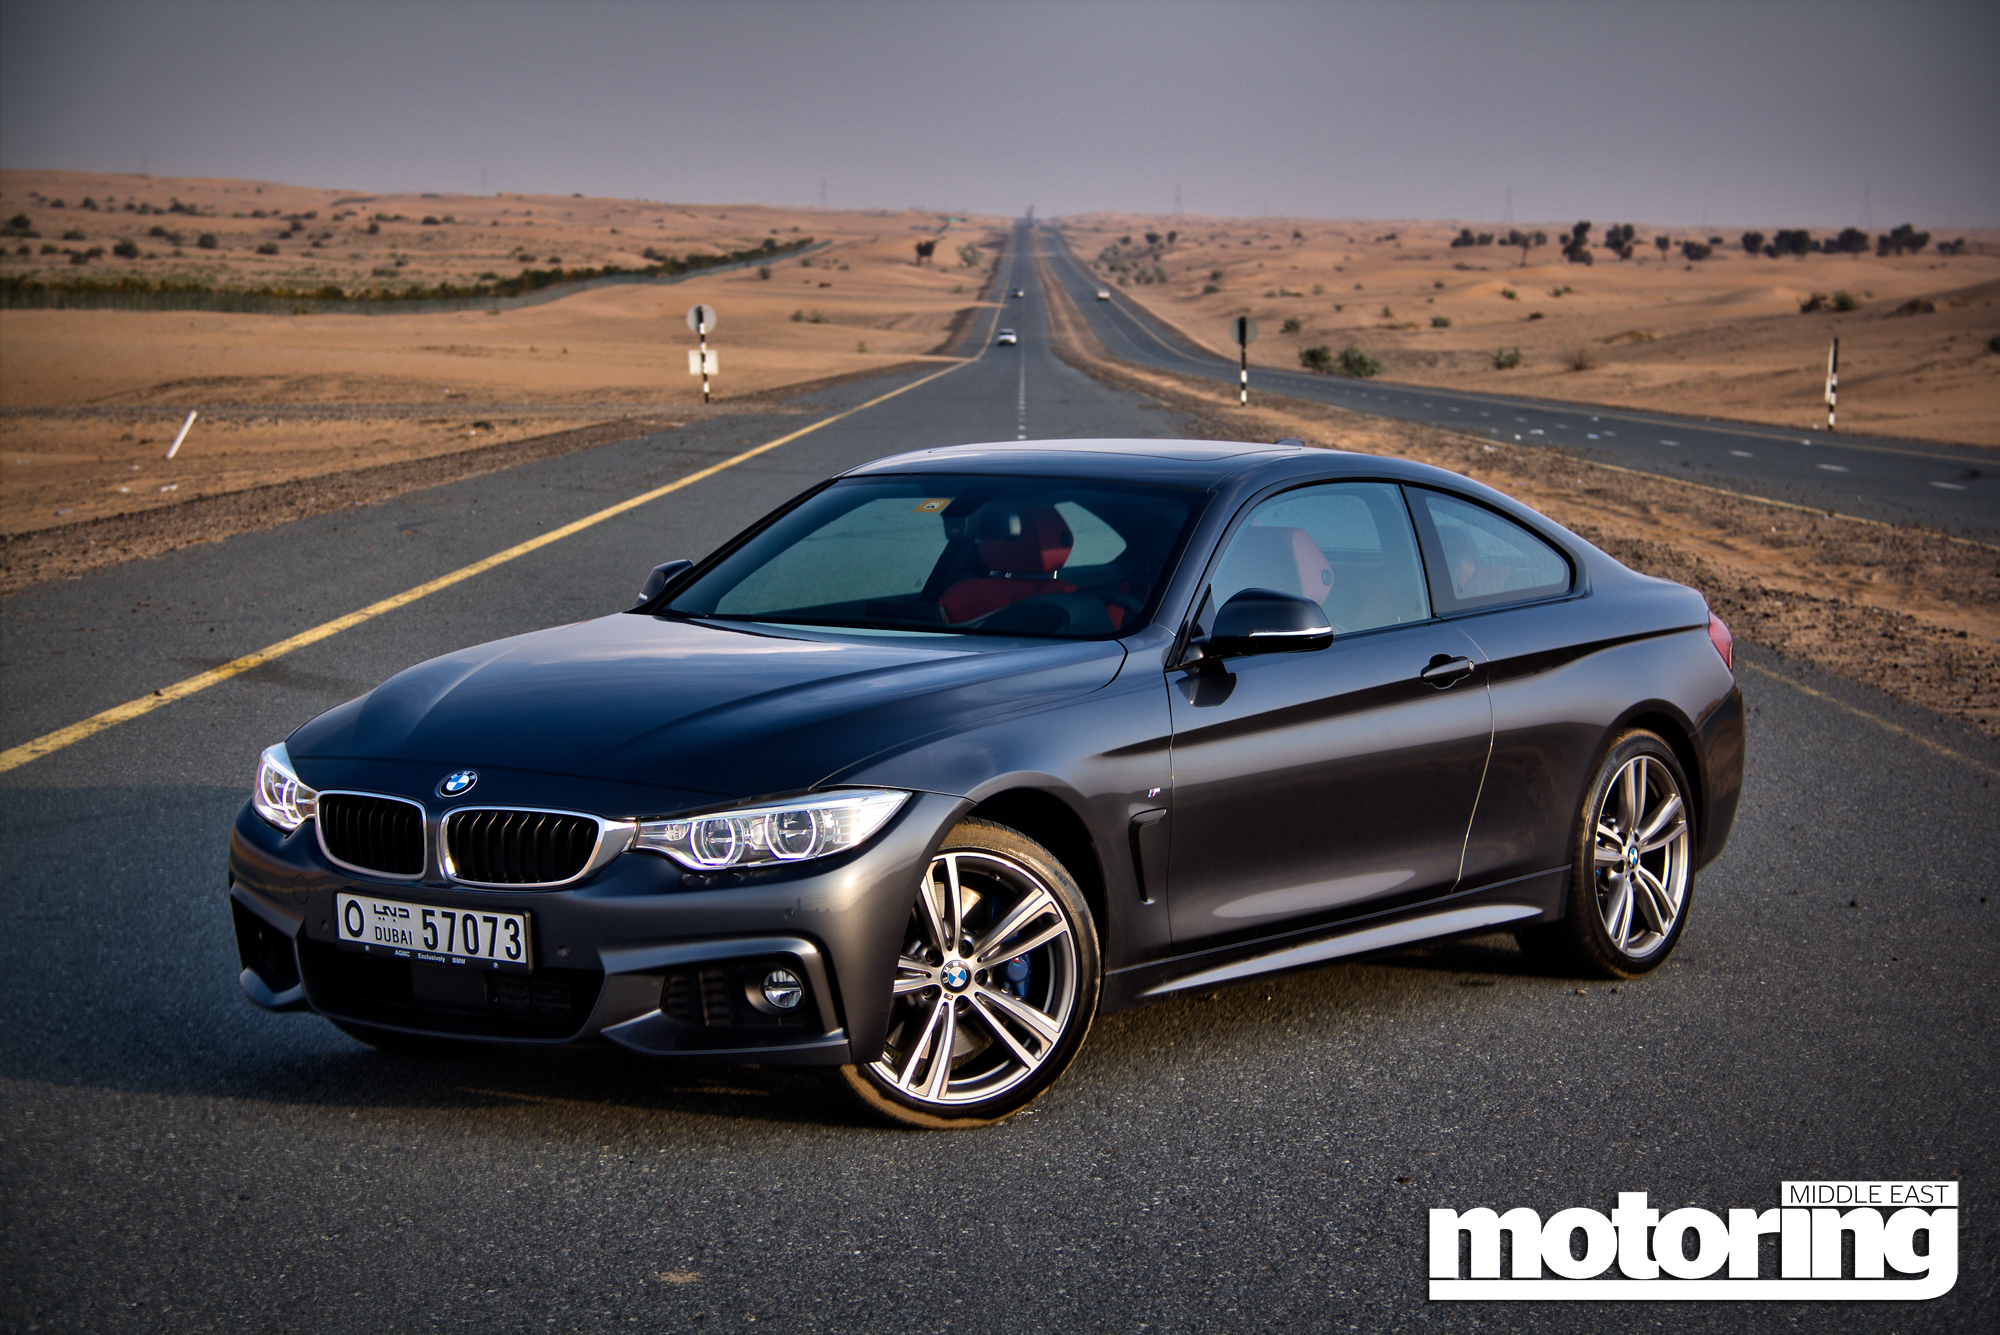 2014 Bmw 435i Reviewmotoring Middle East Car News Reviews And 1966 Pontiac Catalina Wiring Diagram Coupe M Sport Review In Dubai